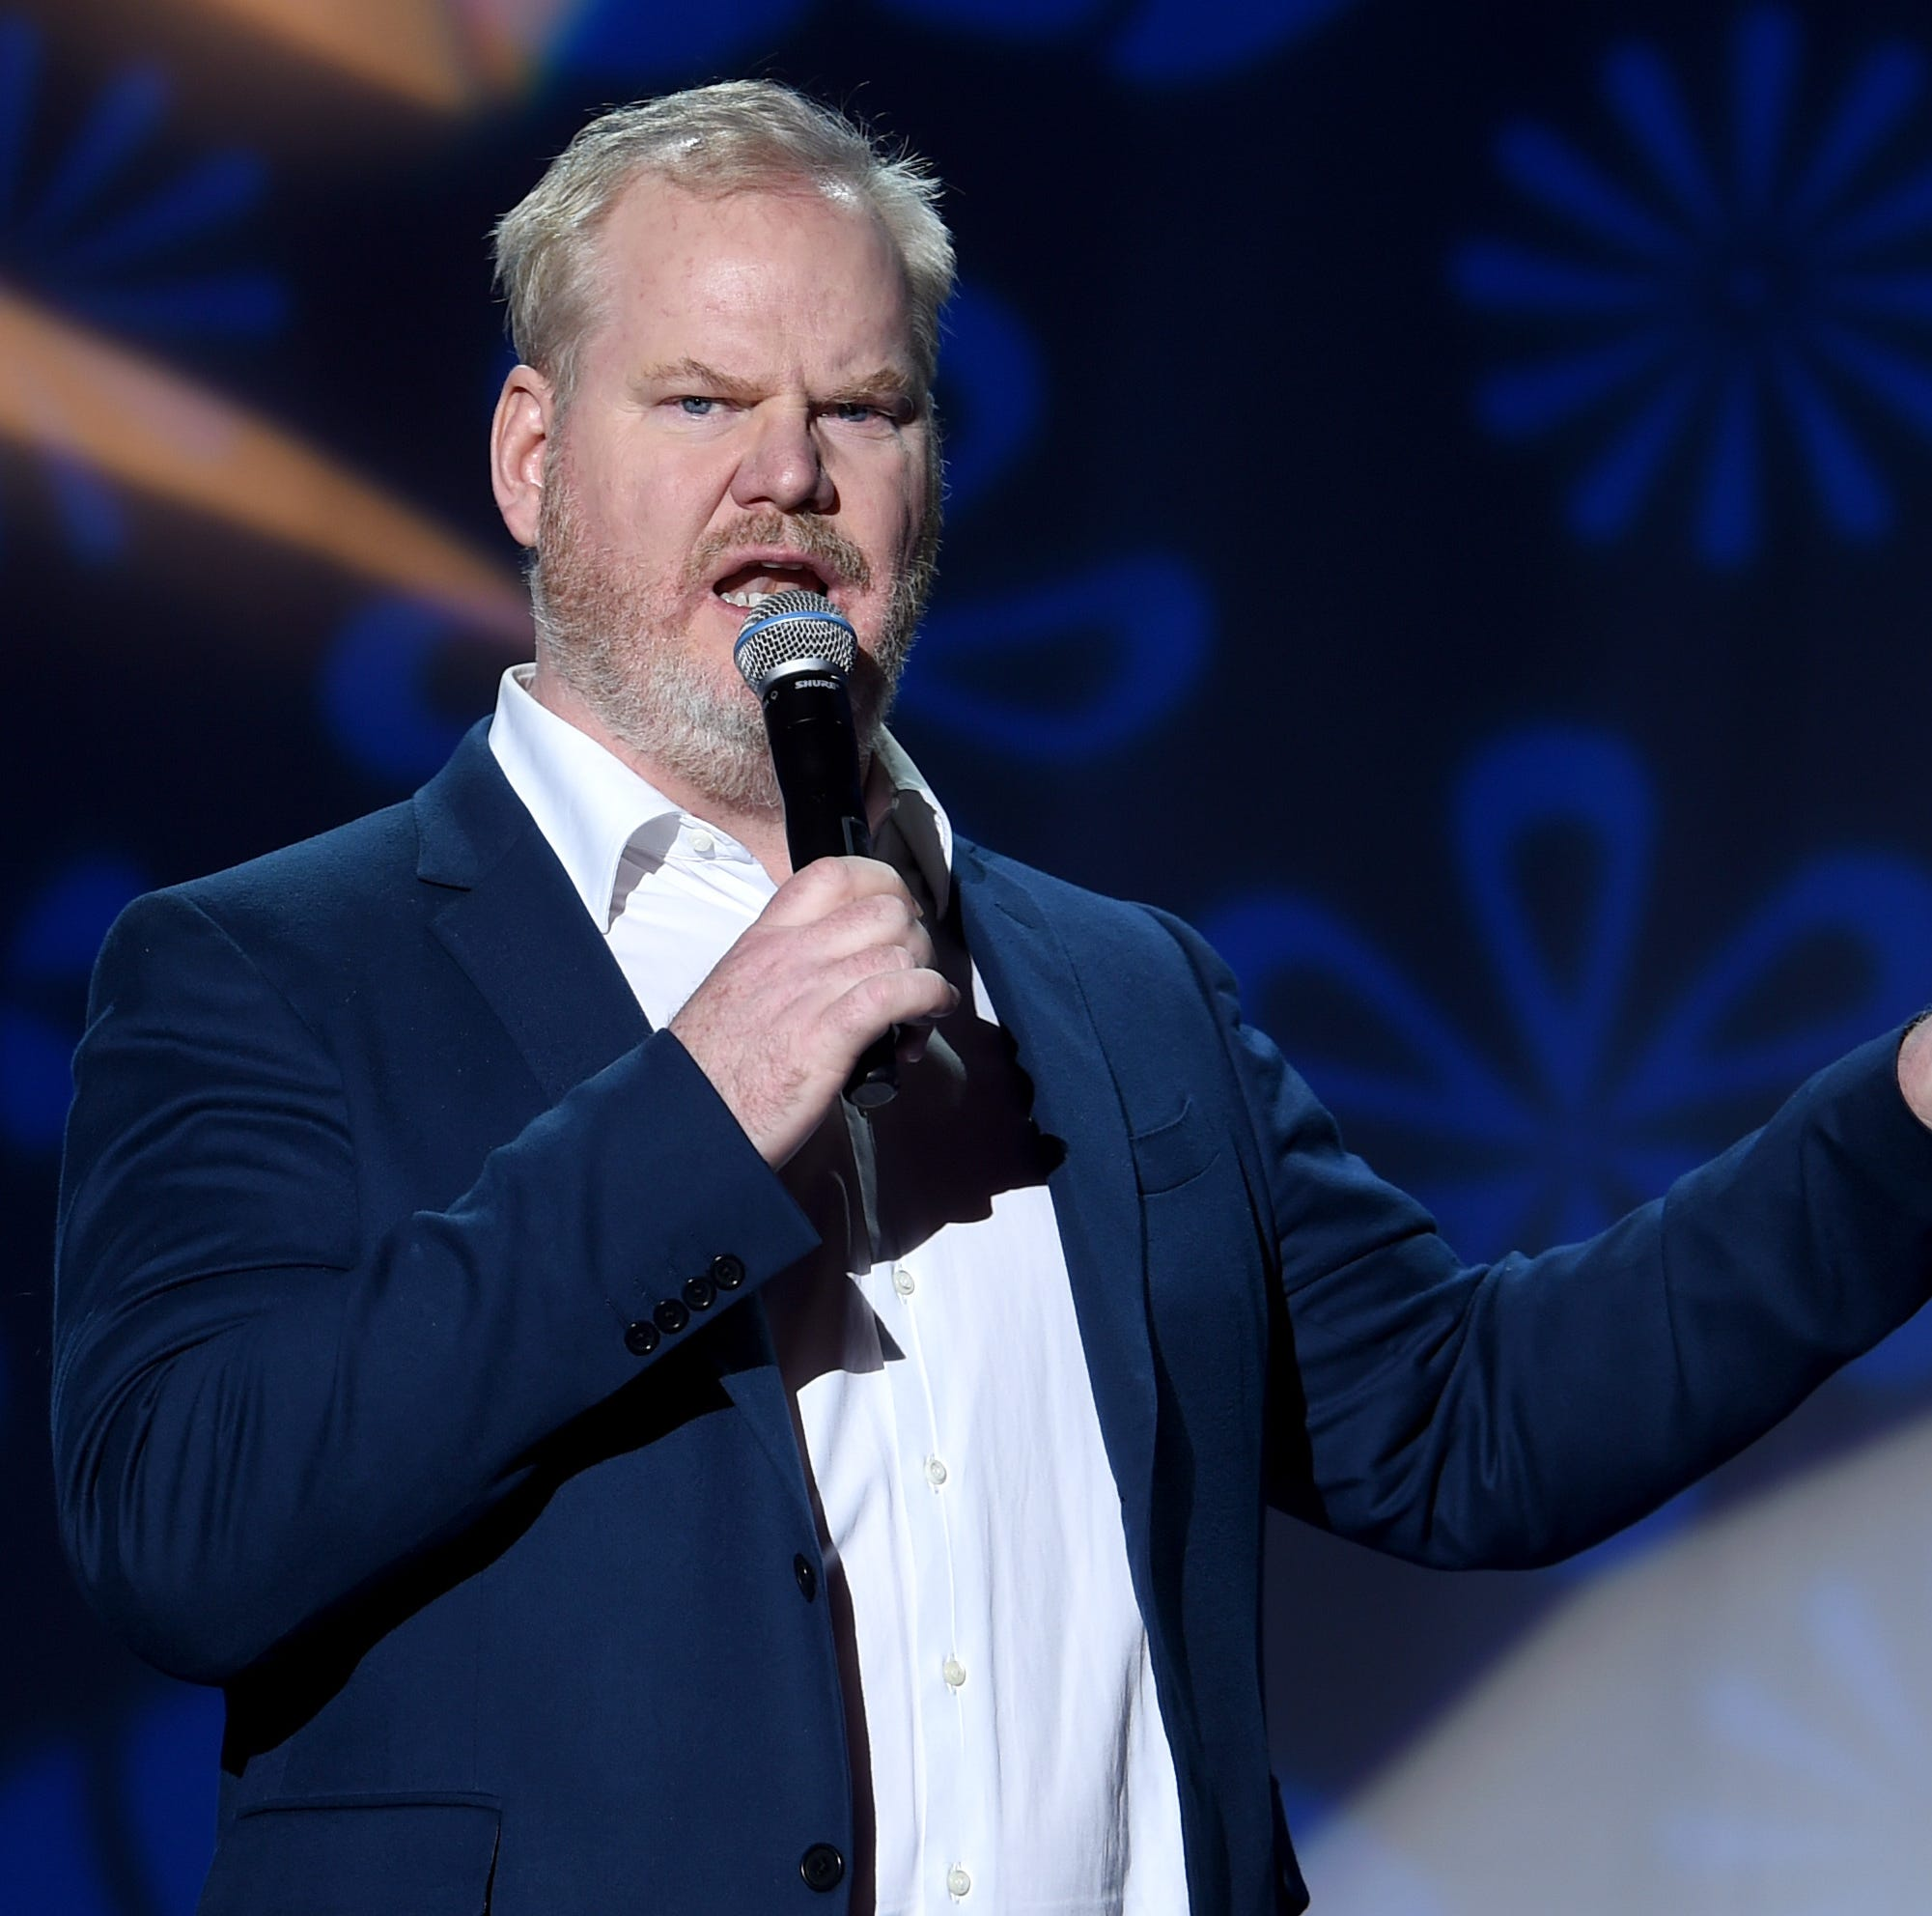 Tickets for 2nd Jim Gaffigan Poughkeepsie show on sale Friday